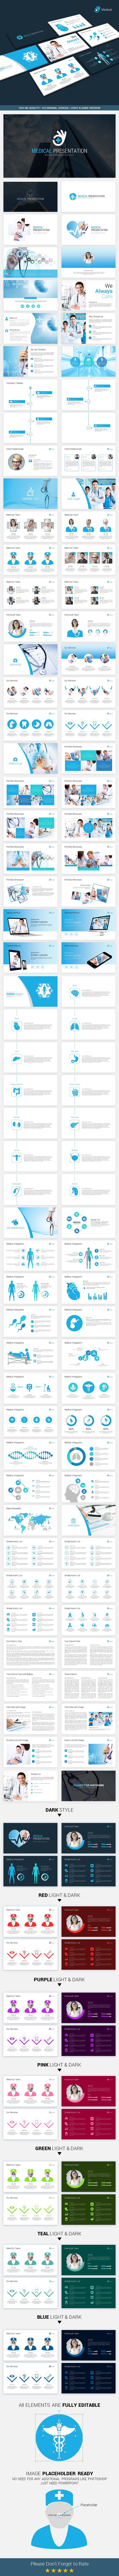 Medical Powerpoint Template Medical Template And Creative Powerpoint